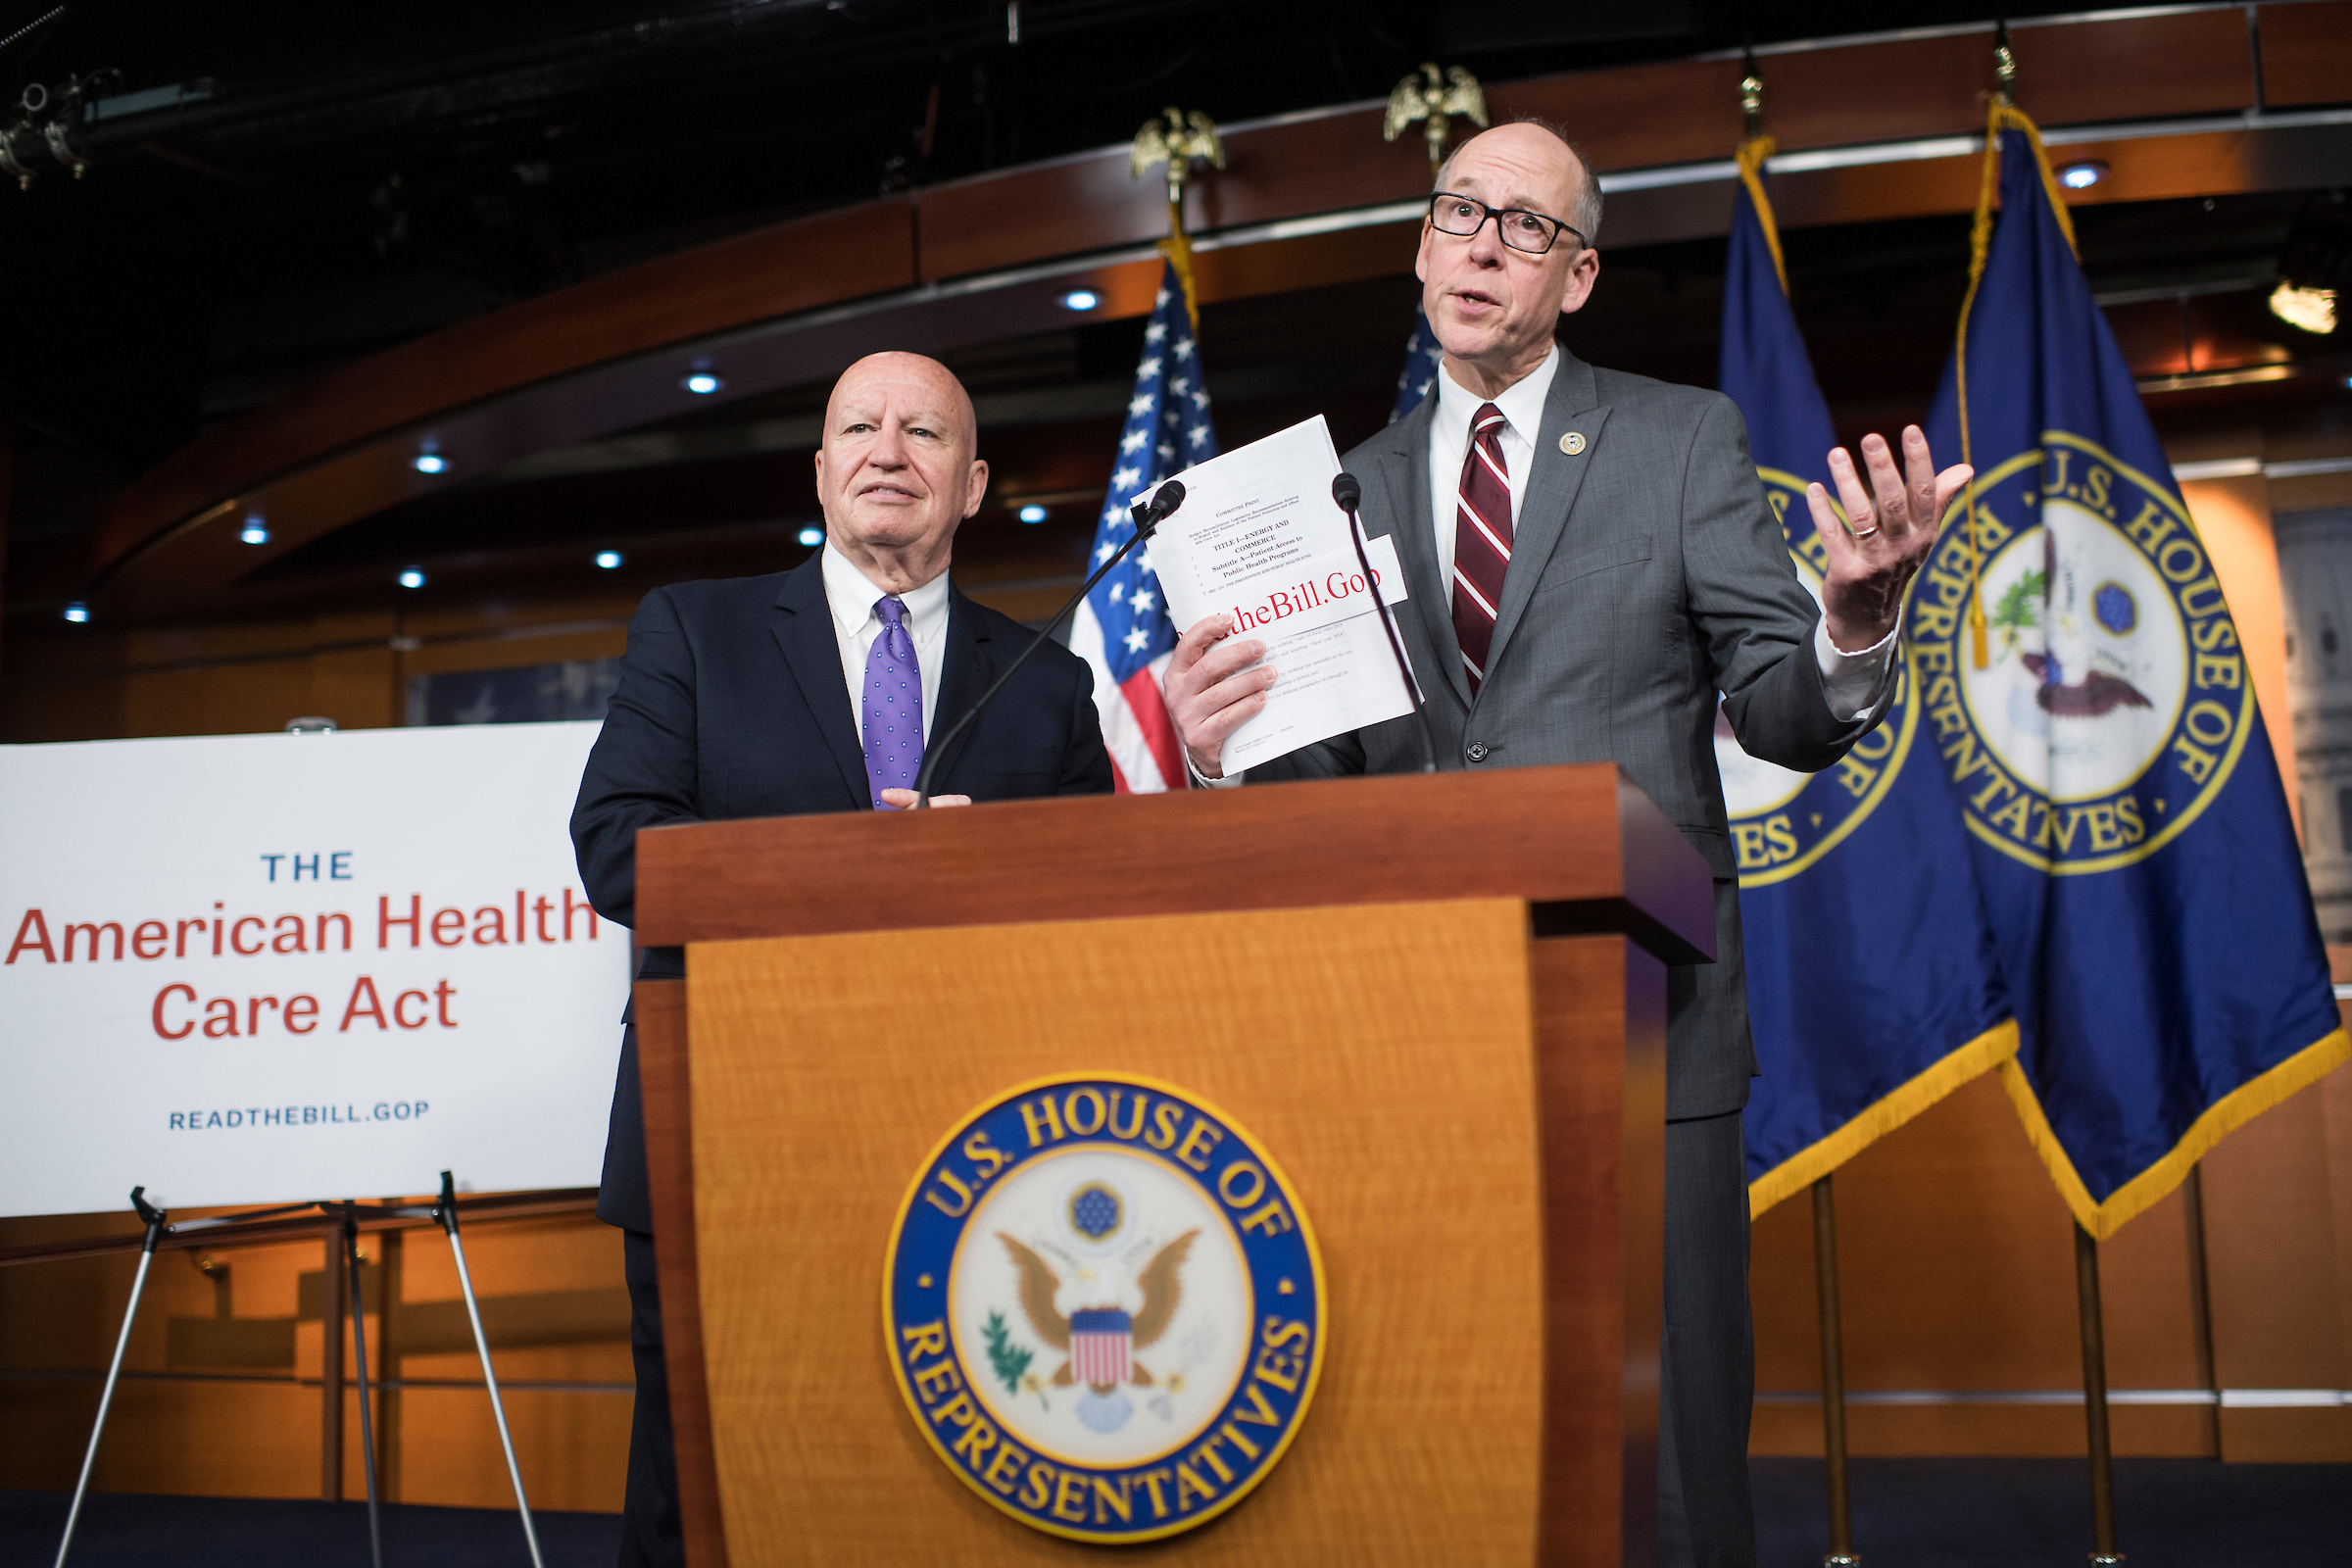 Rep. Greg Walden, R-Ore., chairman of the House Energy and Commerce Committee, and Rep. Kevin Brady, R-Texas, chairman of the House Ways and Means Committee, conduct a news conference after the initial rollout of the American Health Care Act the day before. (Tom Williams/CQ Roll Call)